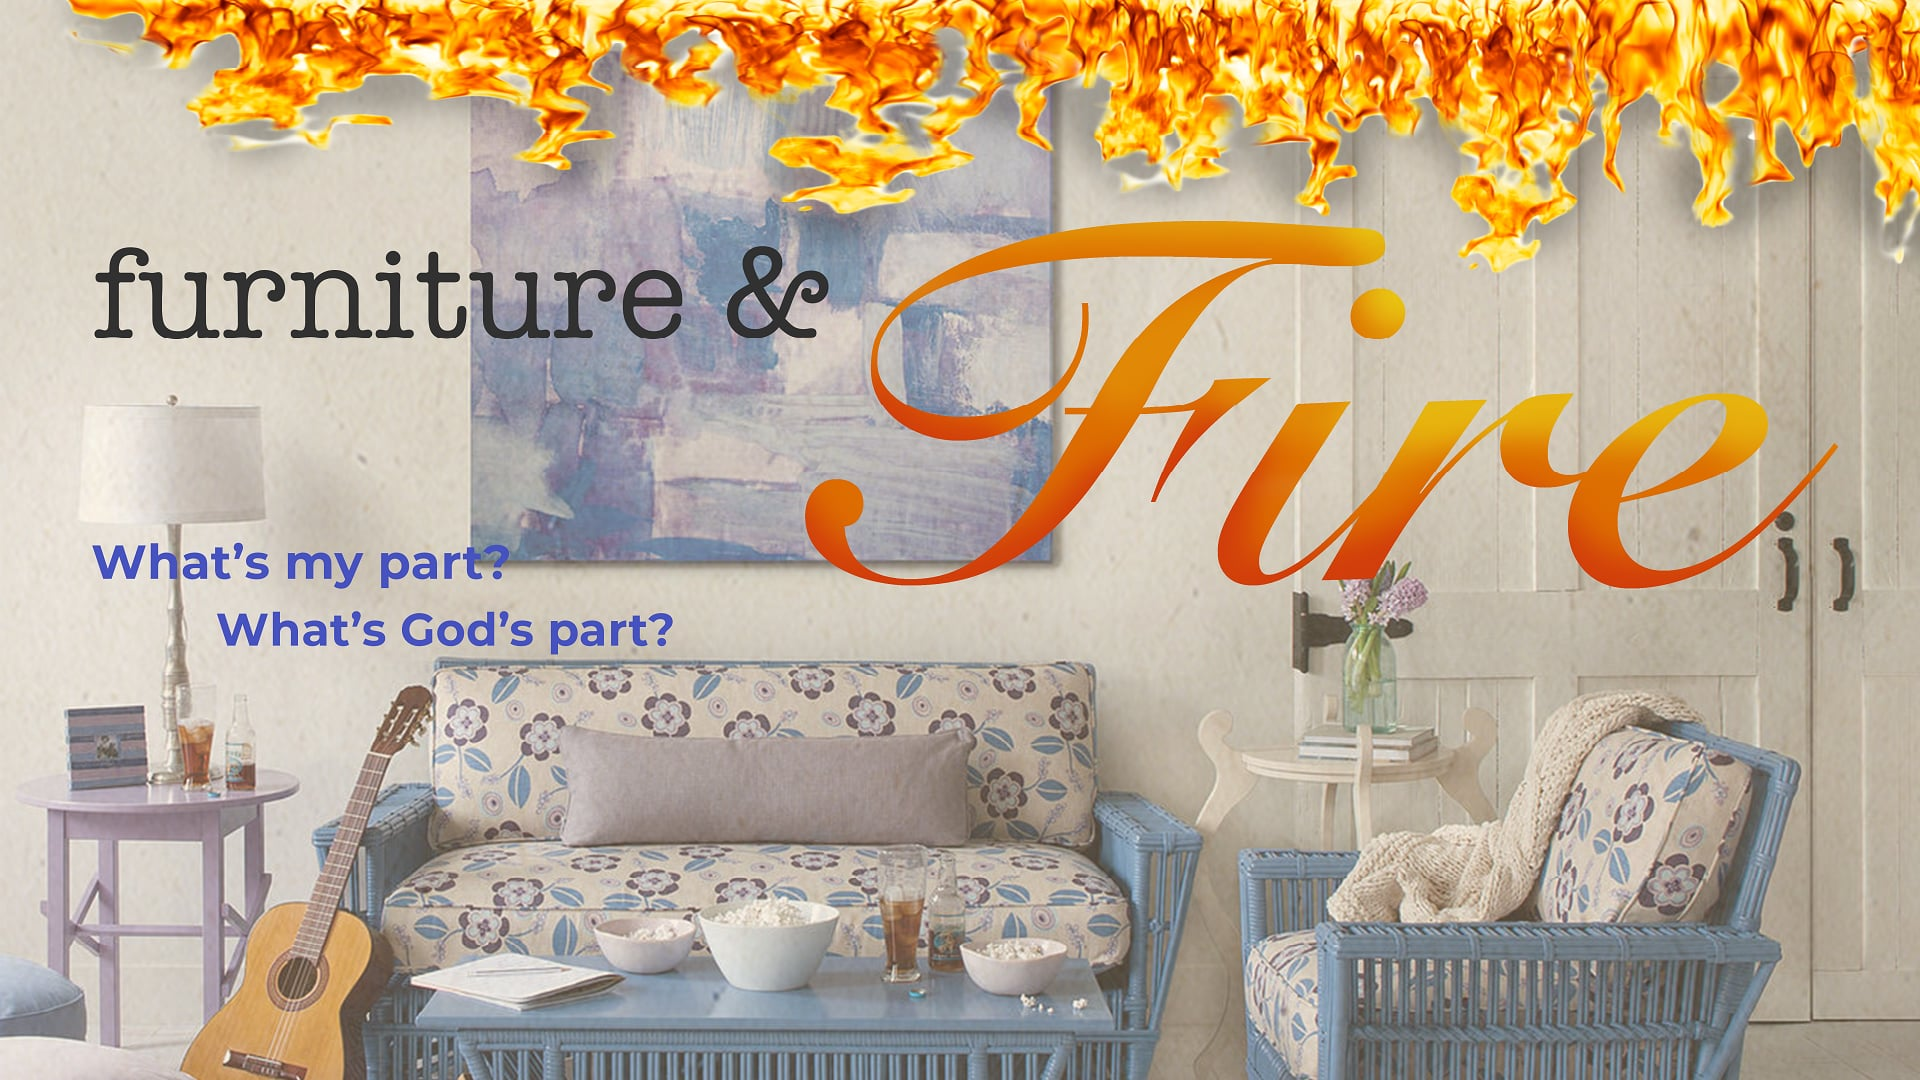 Furniture and Fire - Part 2